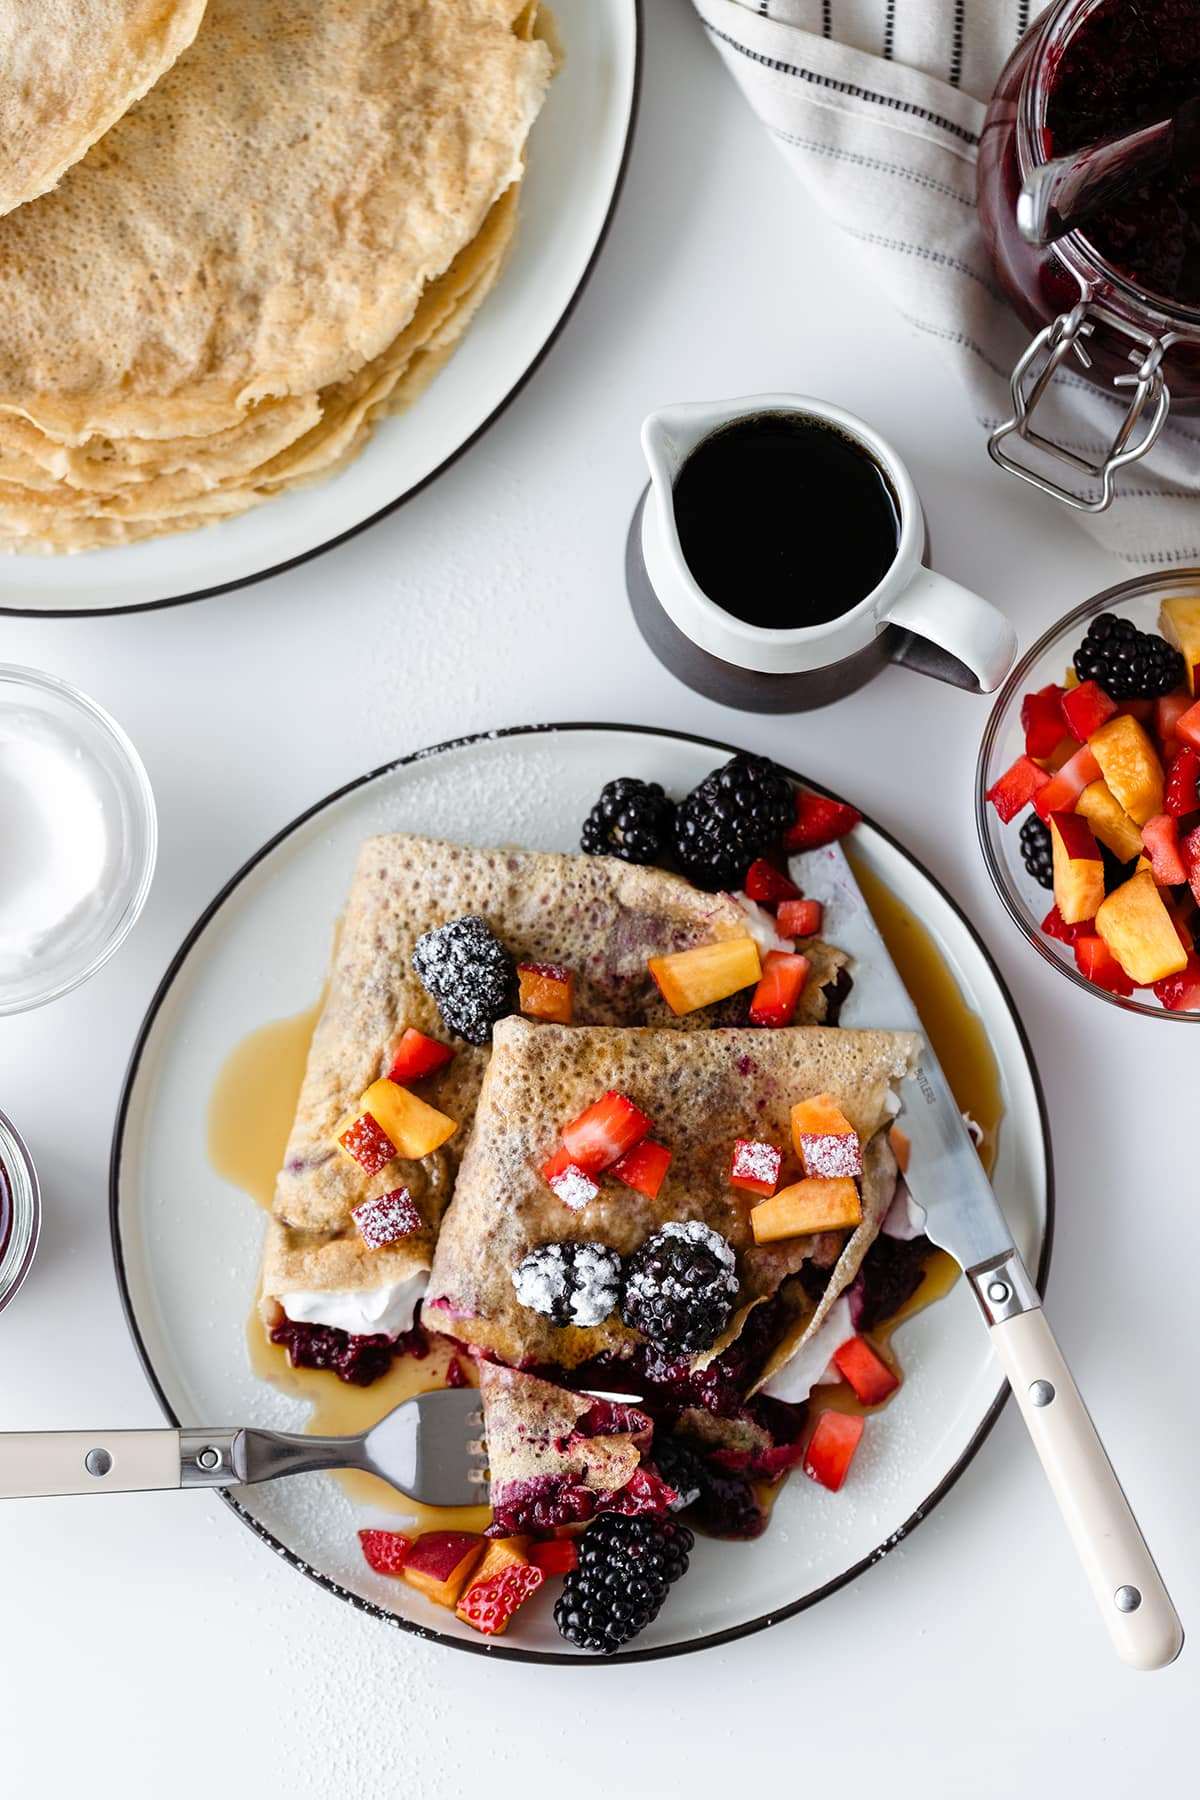 Gluten-free Crepes with Lavender Blackberry Jam